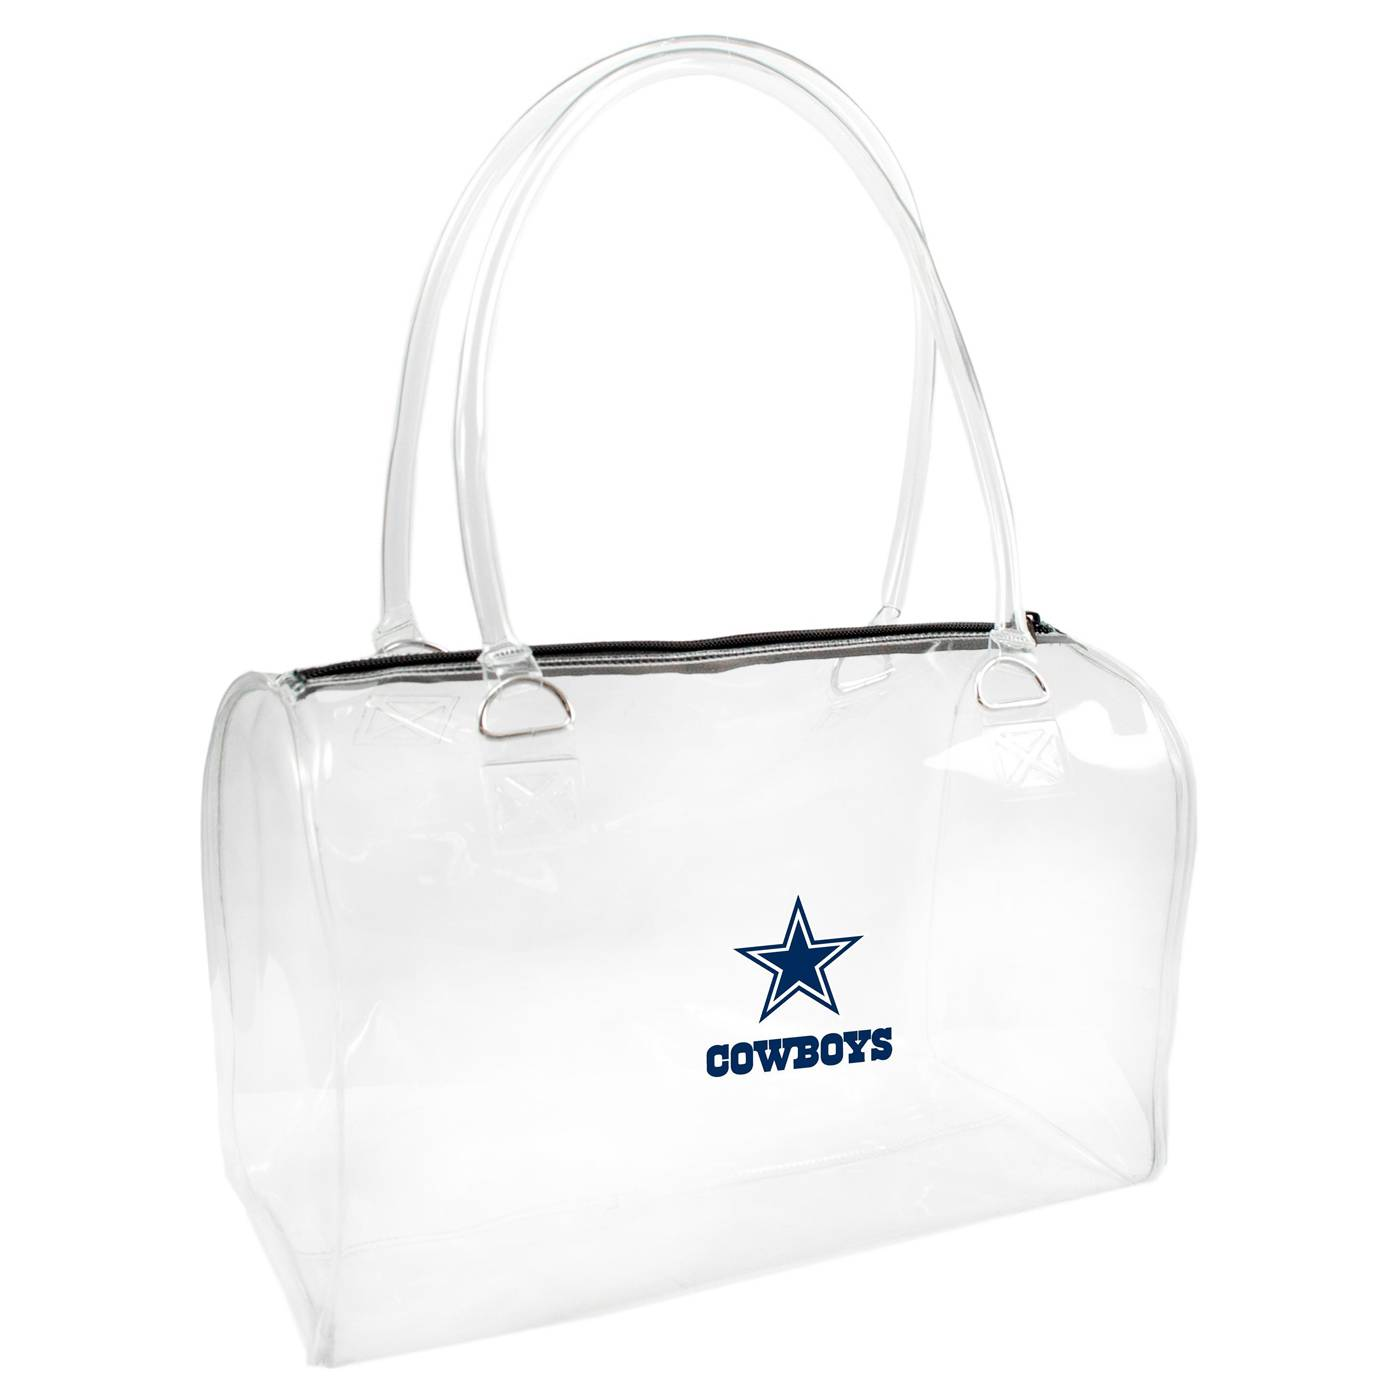 It S About Time There A Fashionable Clear Purse For The Las Dallas Cowboys Bowler Is Nfl Stadium Roved So Fans Can Enter With